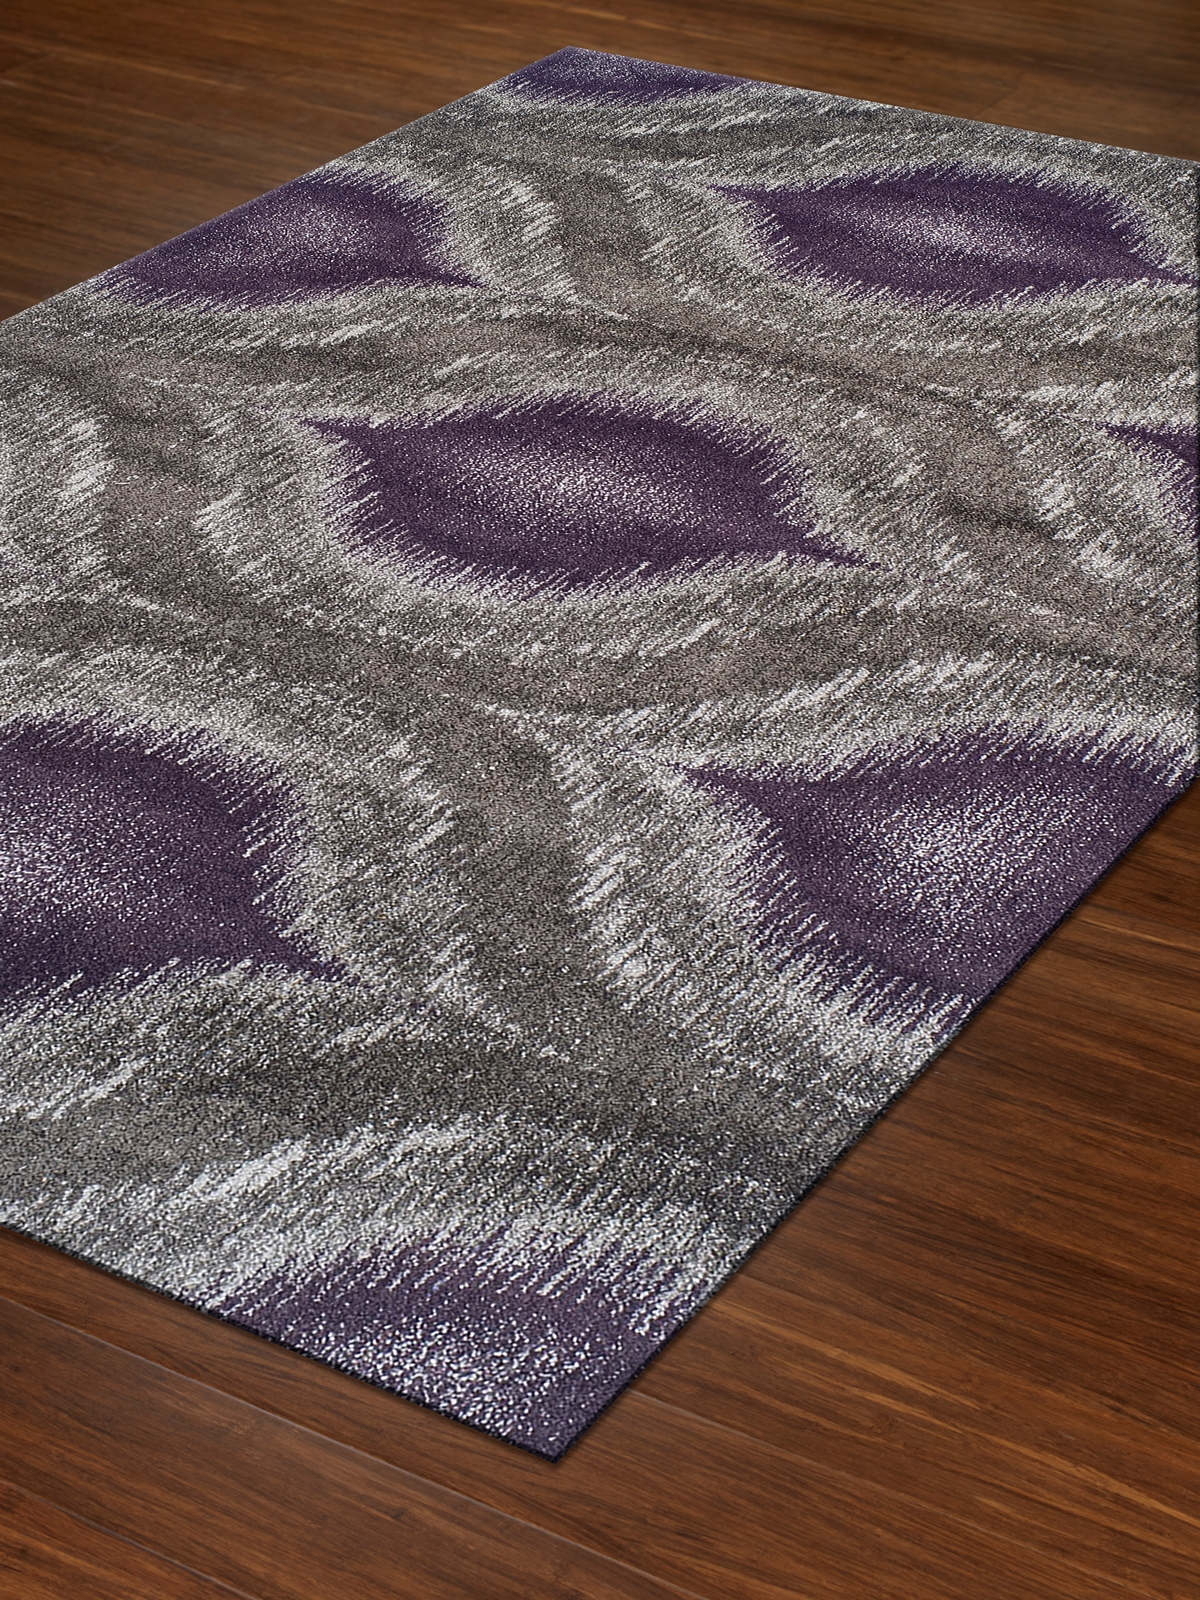 Dalyn Modern Greys MG4441 Plum Area Rug Free Shipping